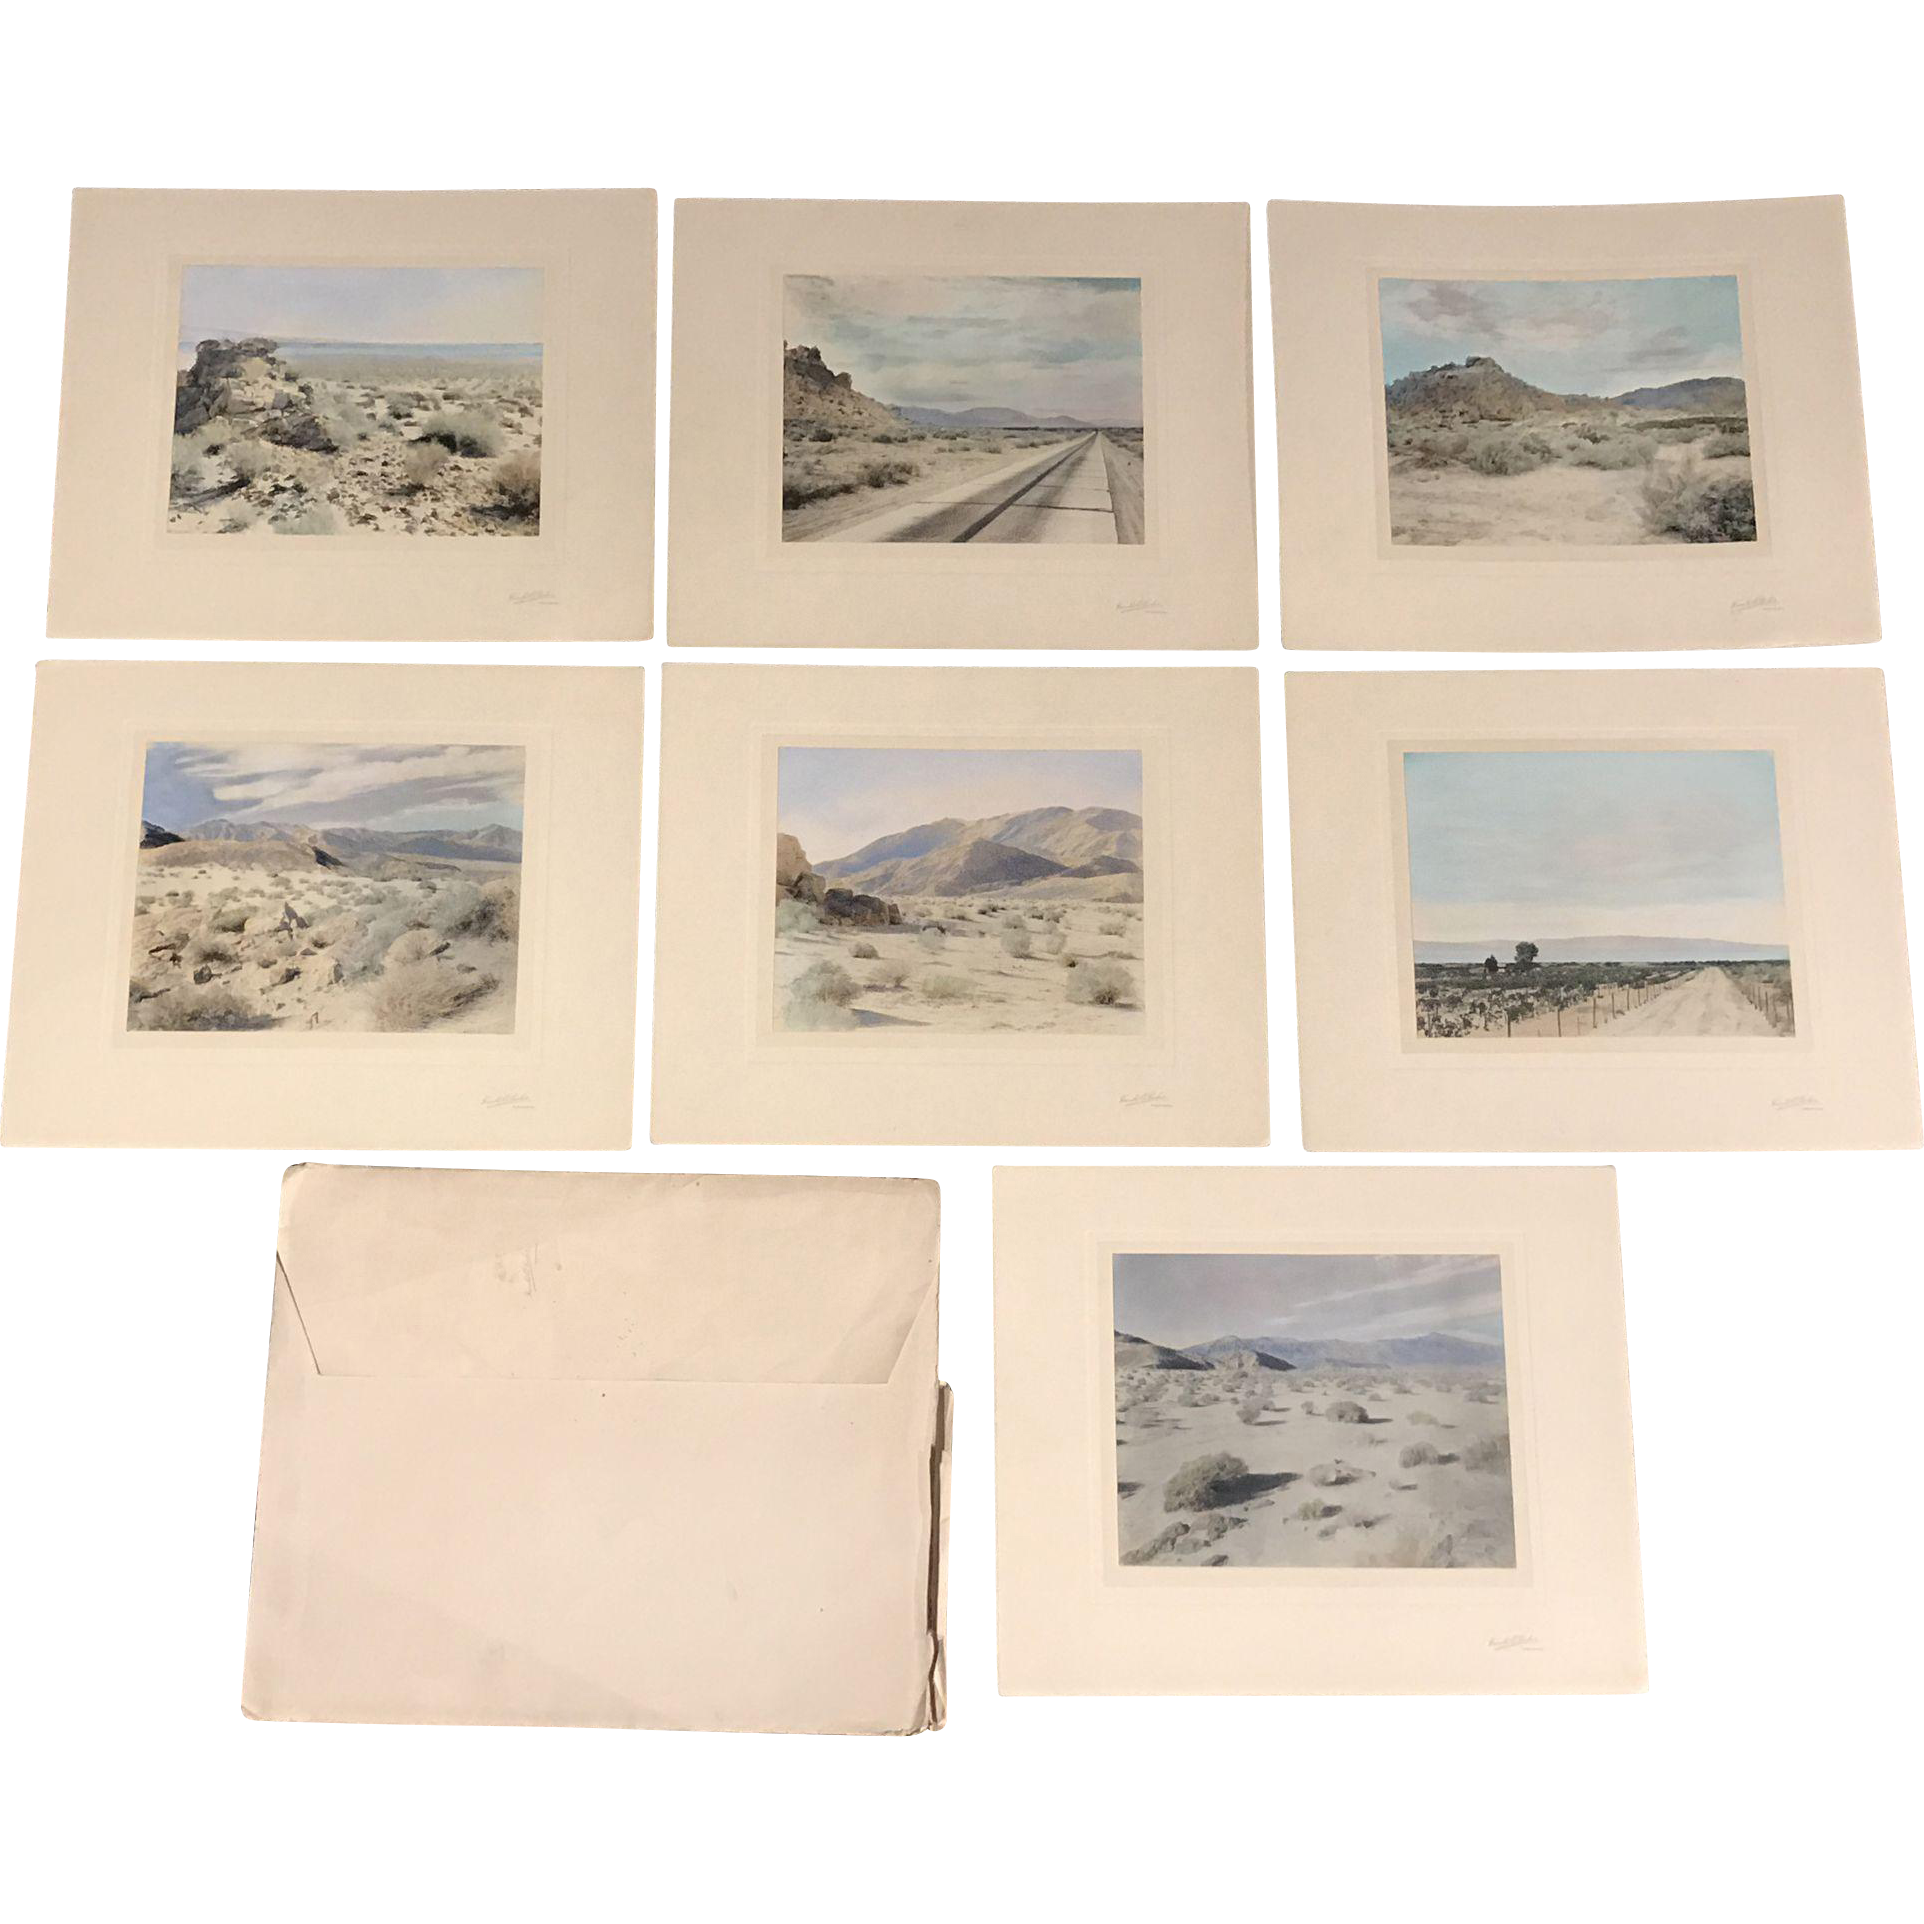 Set of 7 Harold A. Parker Desert Photographs with Original Folio